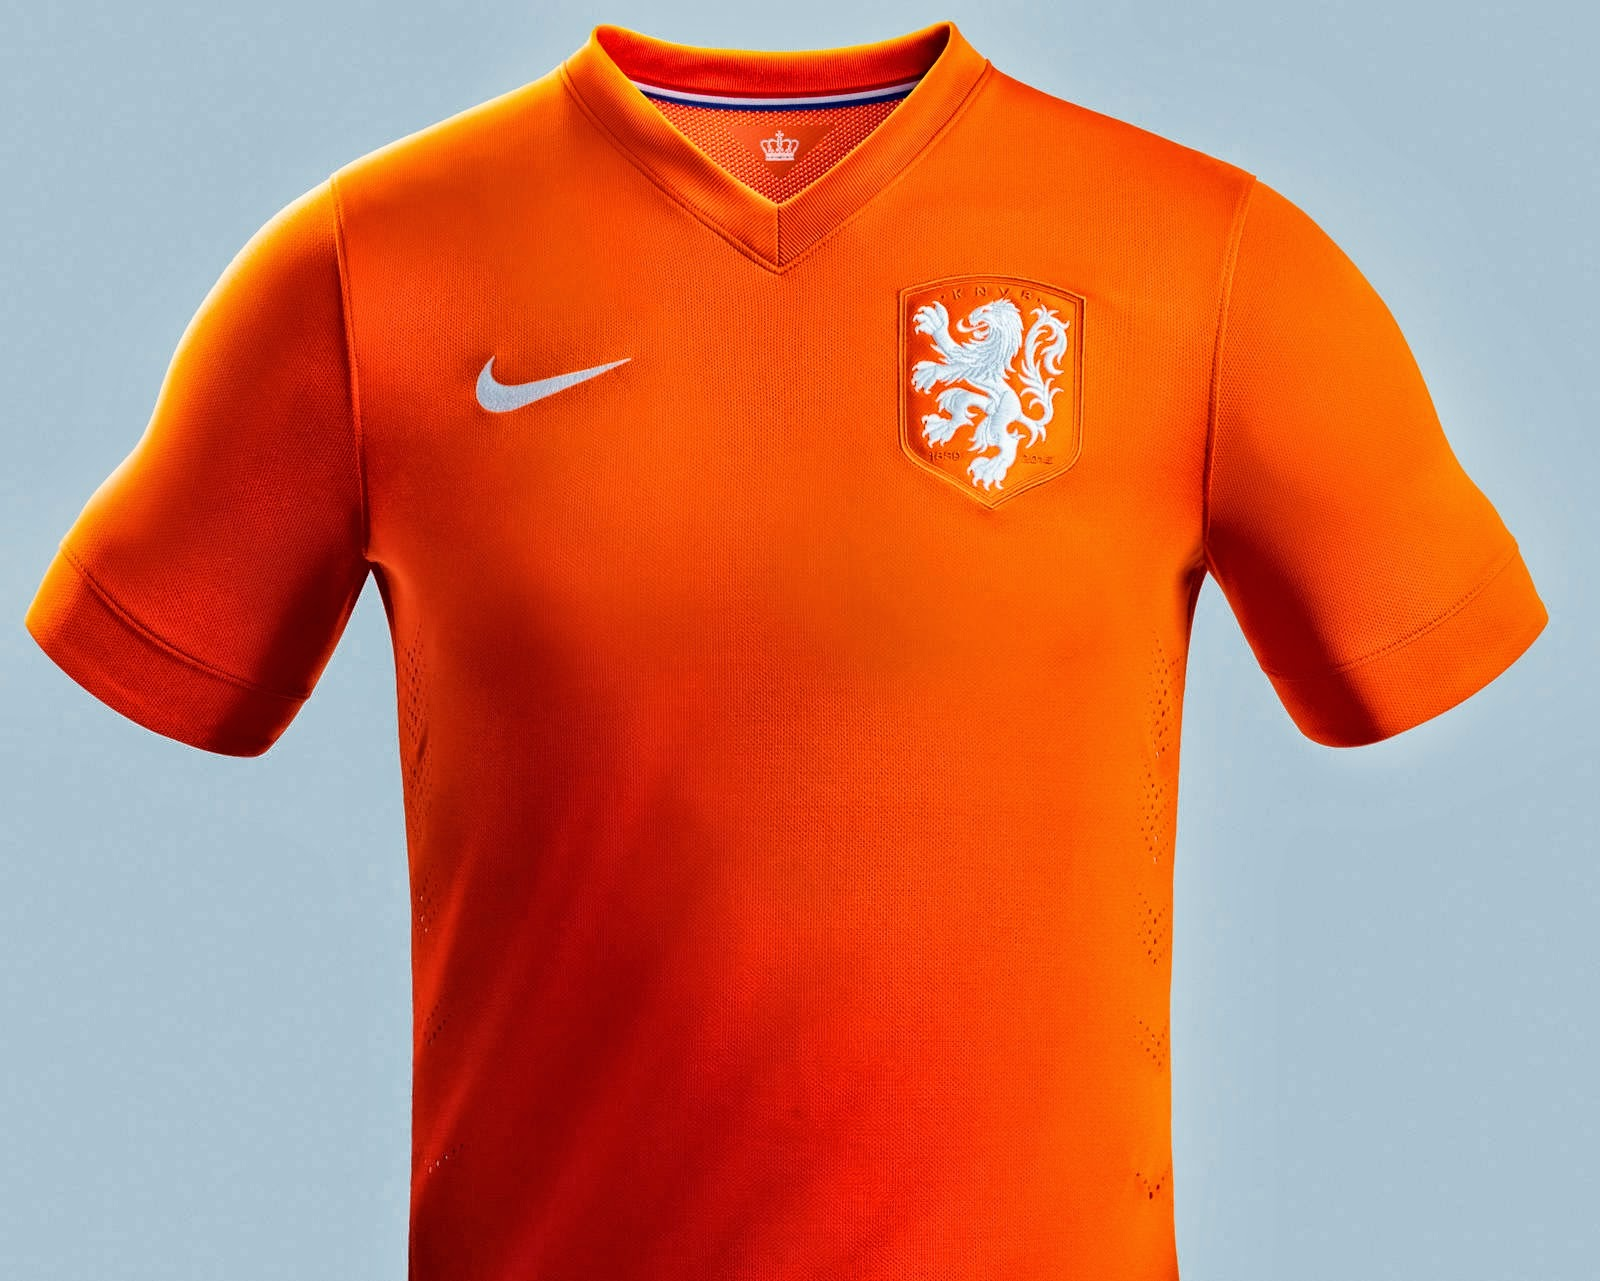 jersey Netherlands 2014 World Cup Home Kit orange